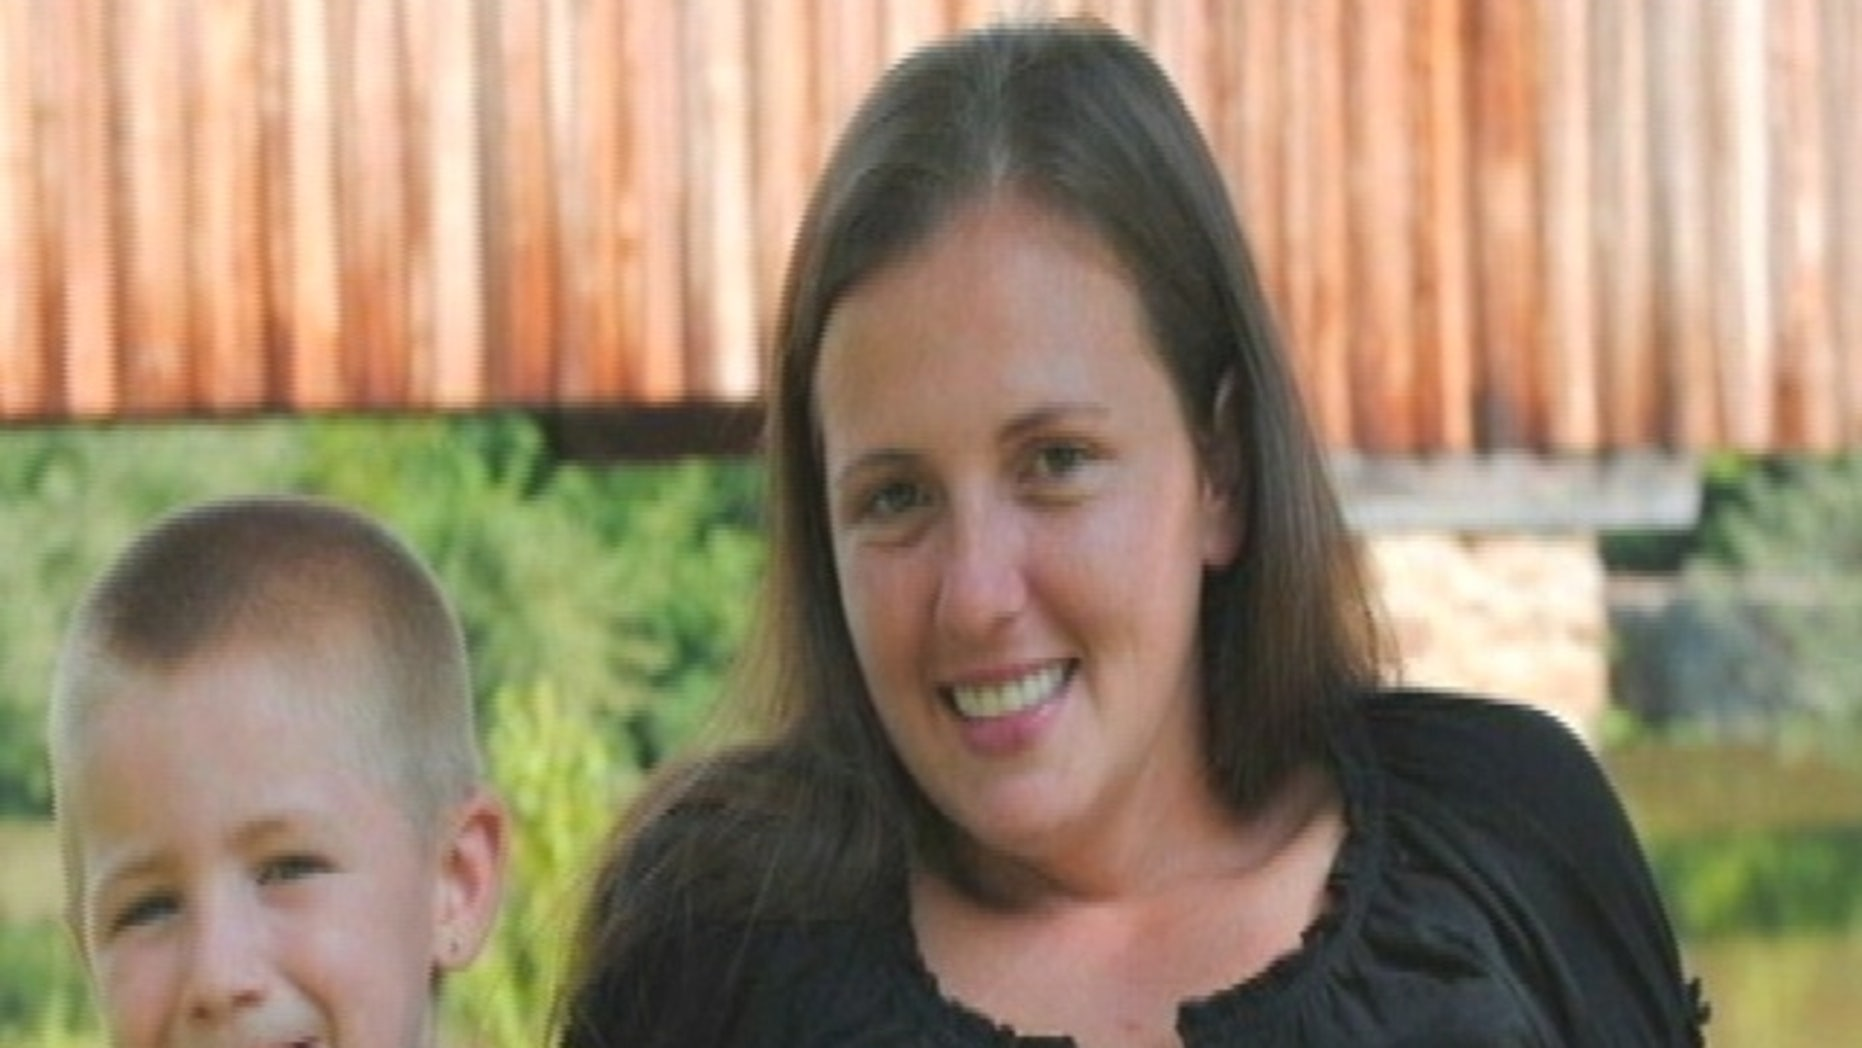 Family members say Johnette Nation lied about her son, Nathan Leggett, having an incurable disease.